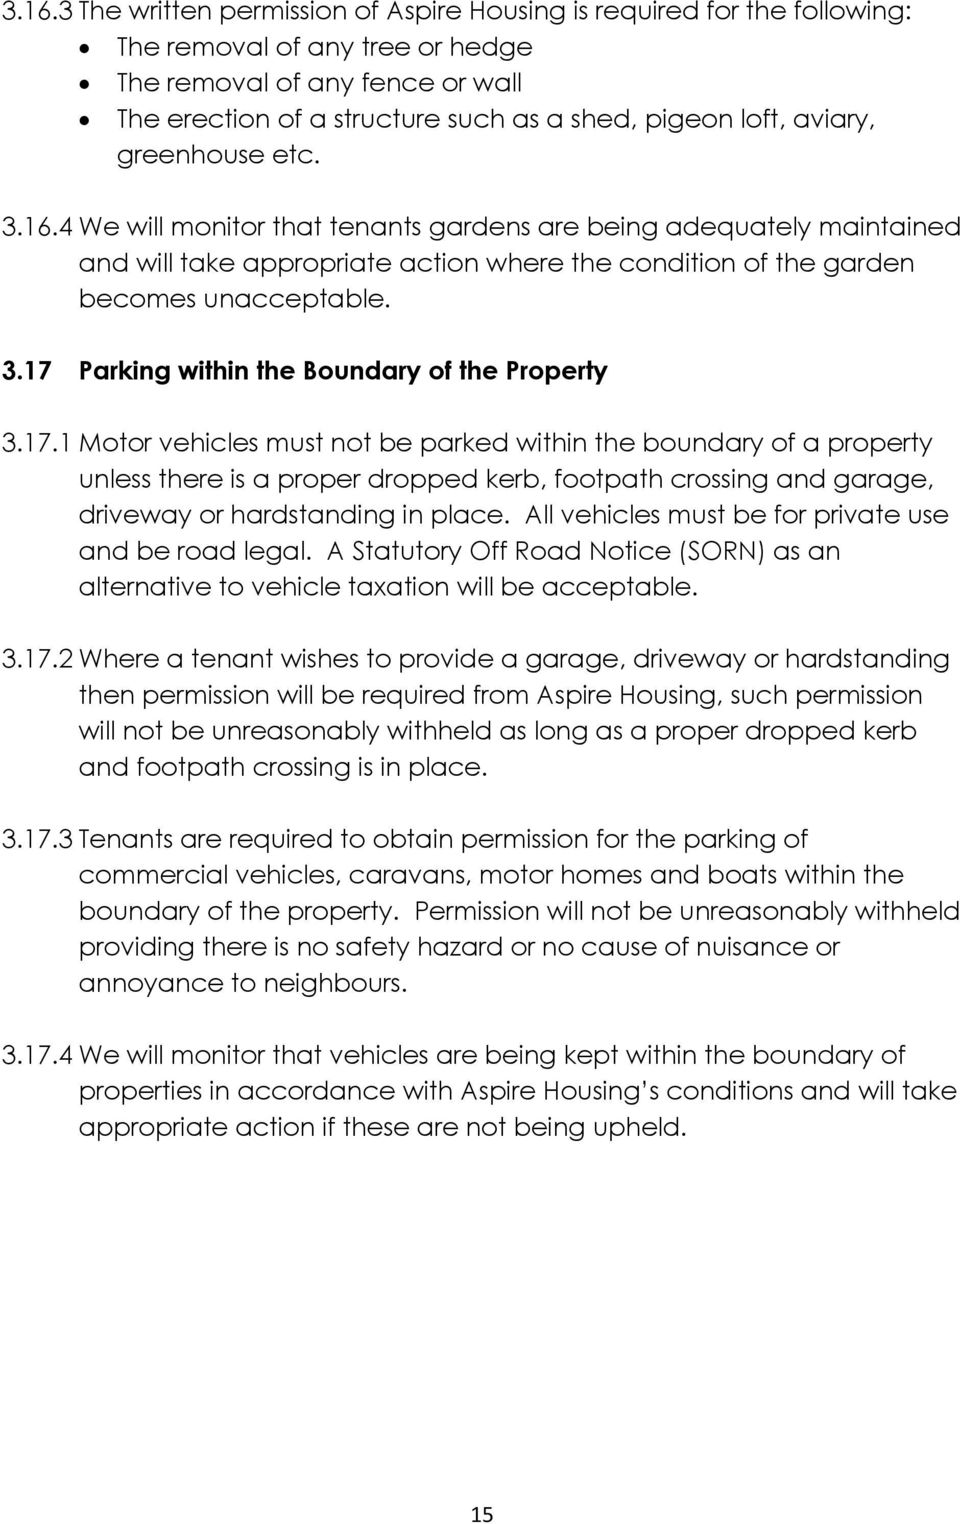 17.1 Motor vehicles must not be parked within the boundary of a property unless there is a proper dropped kerb, footpath crossing and garage, driveway or hardstanding in place.